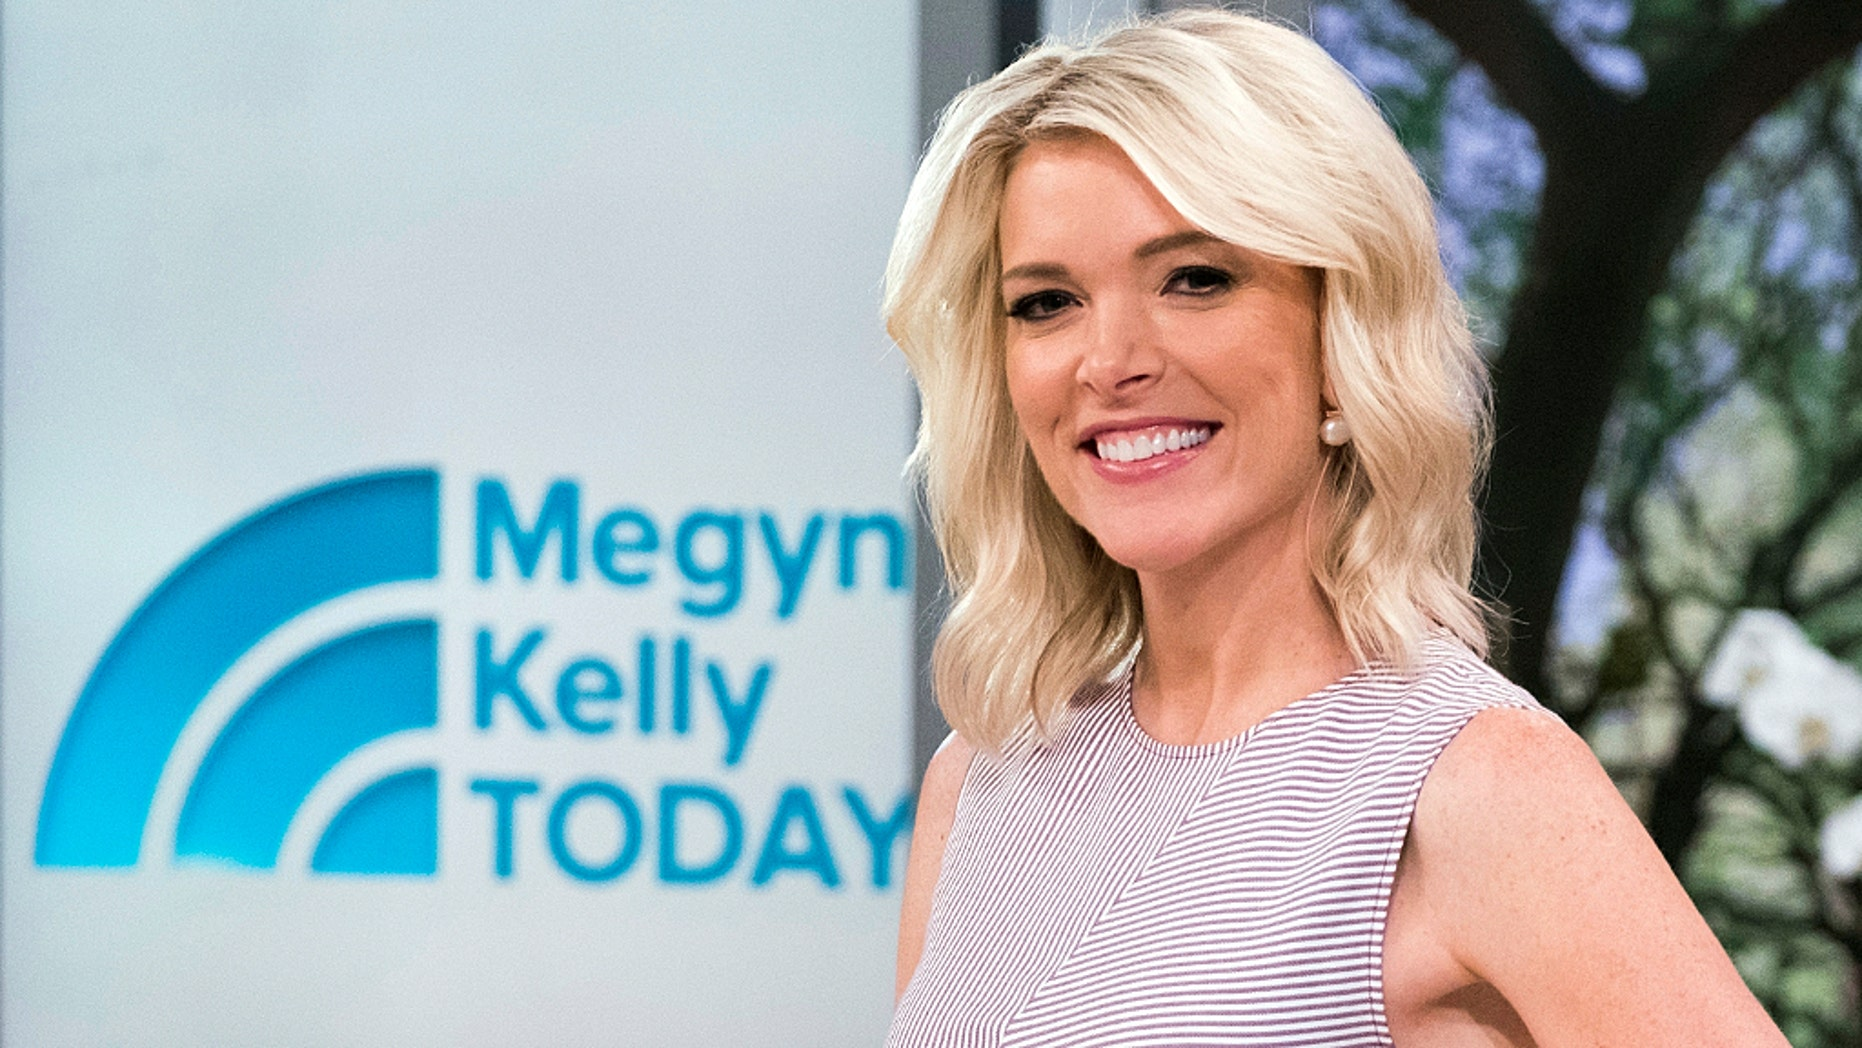 """Megyn Kelly's fate at NBC was sealed when she pondered why """"blackface"""" is frowned upon during a live panel discussion last year (Photo by Charles Sykes/Invision/AP)"""